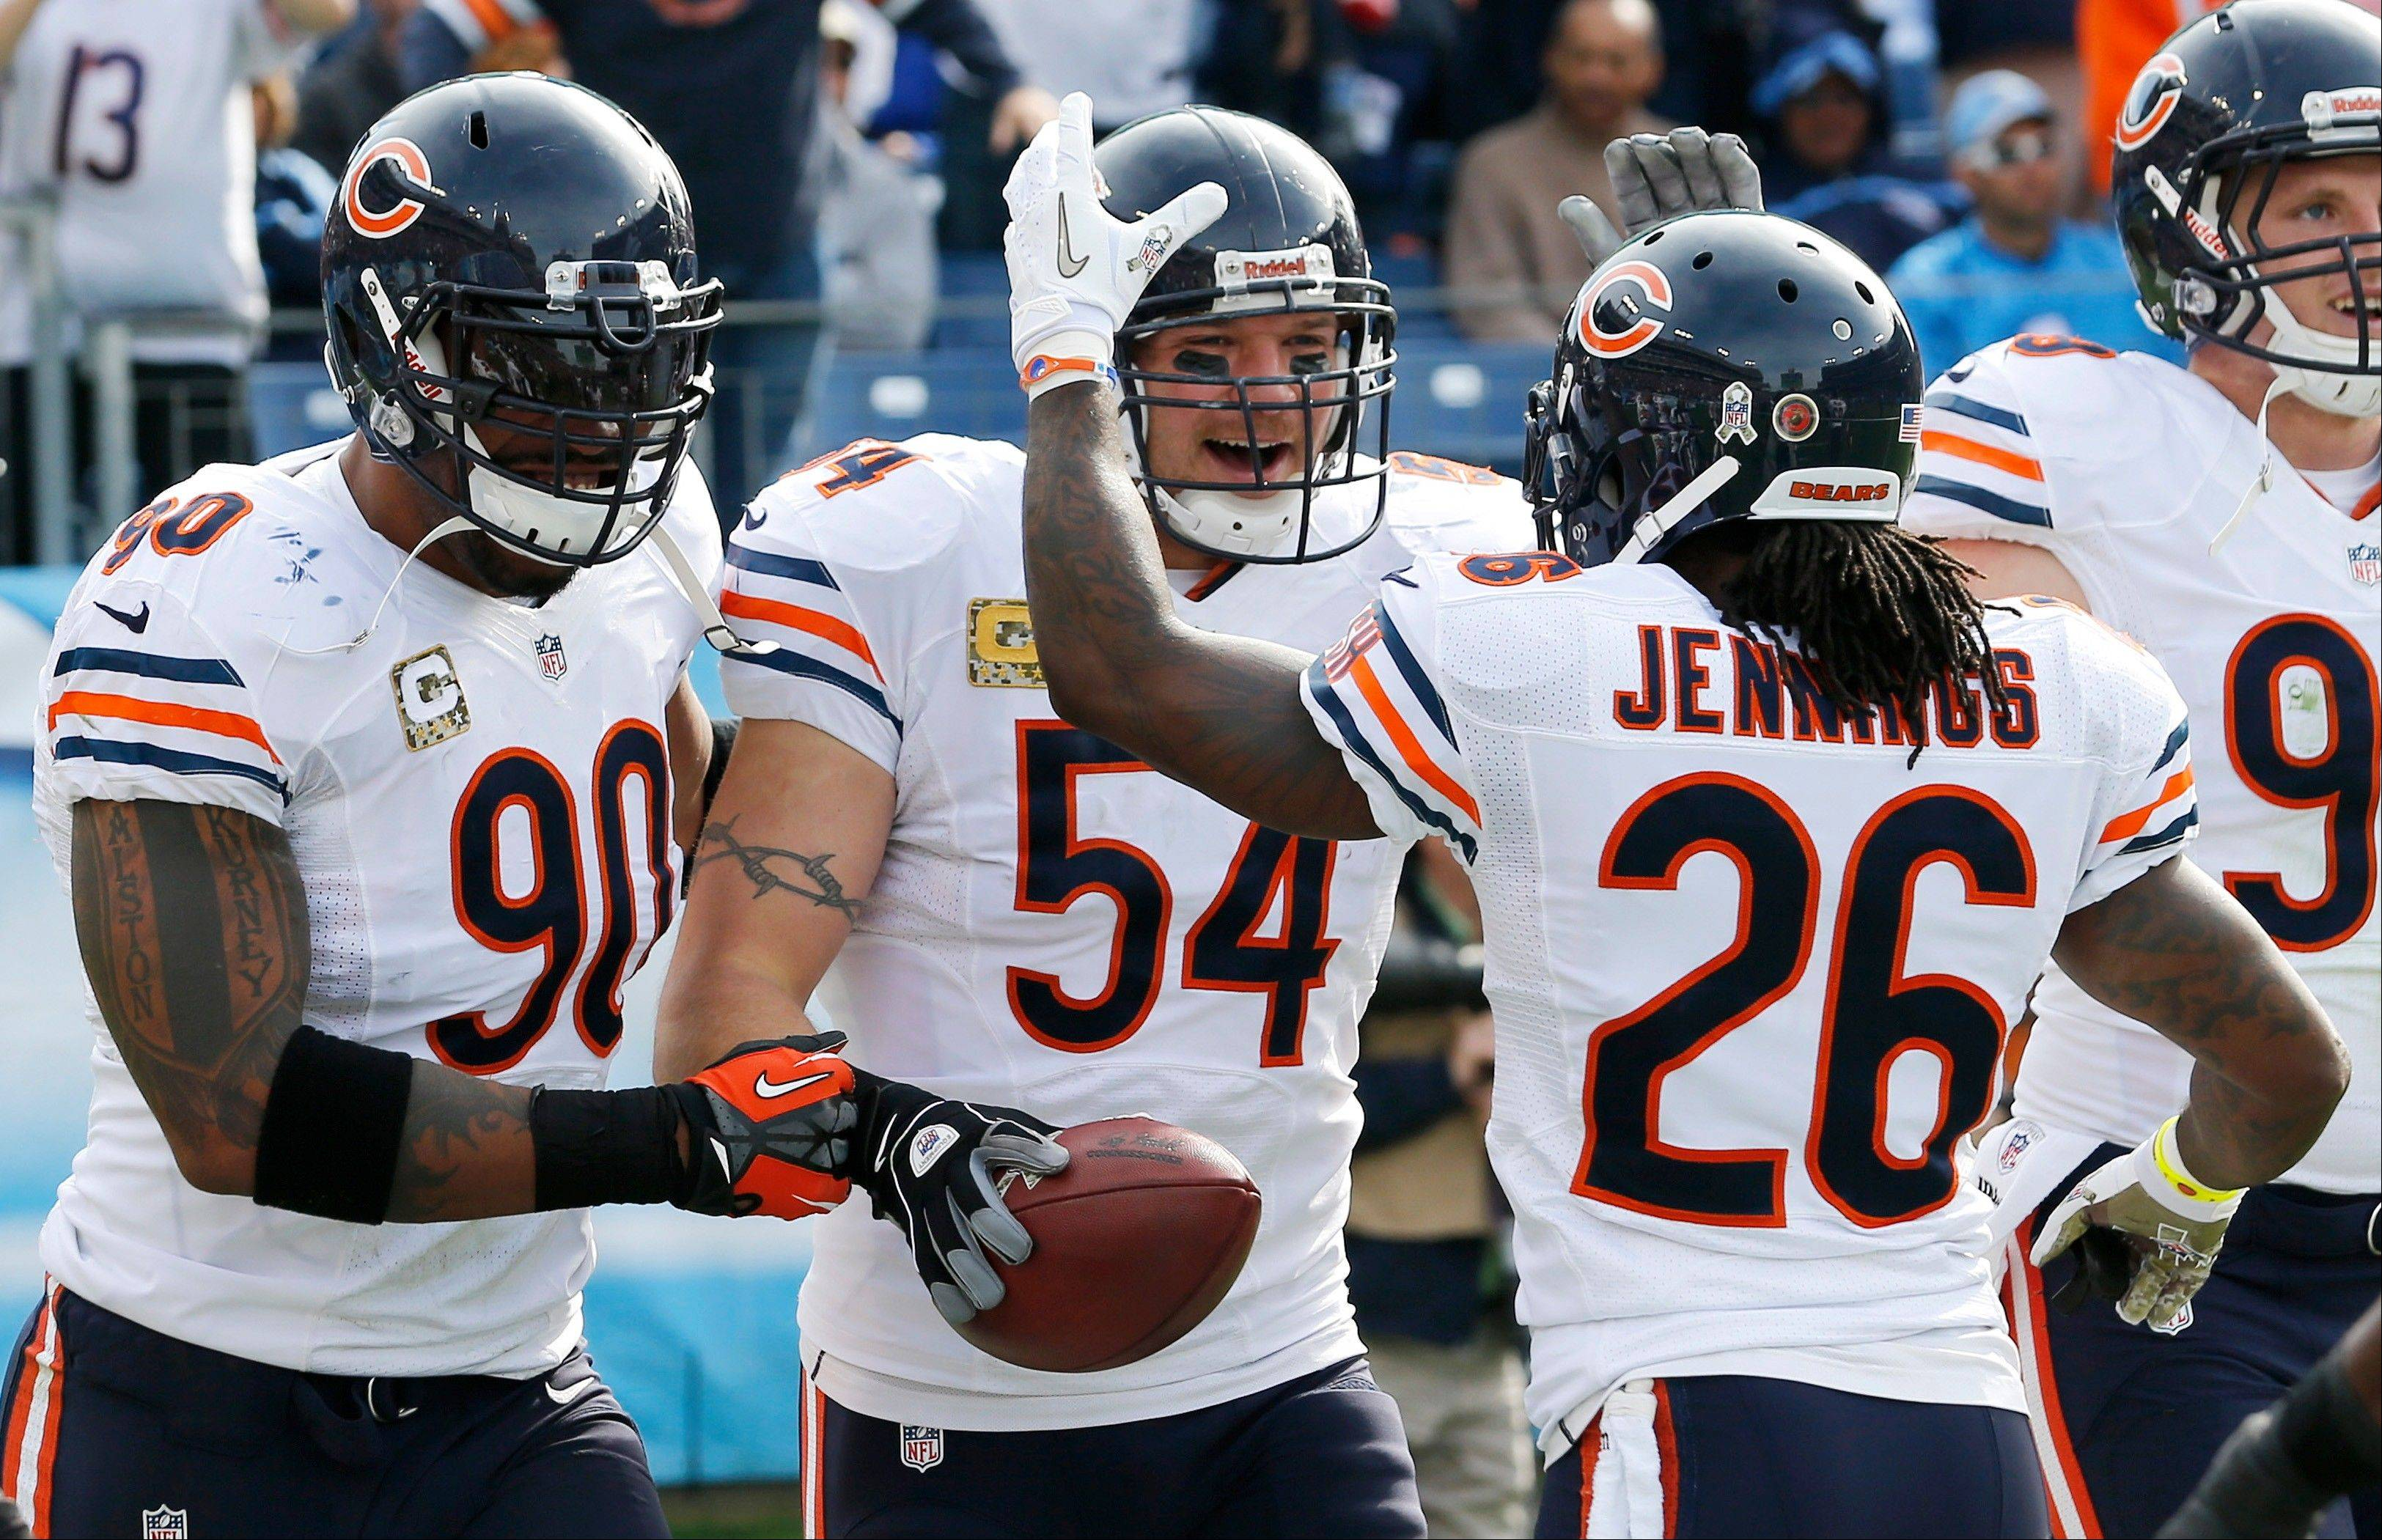 Chicago Bears middle linebacker Brian Urlacher celebrates with Julius Peppers and Tim Jennings after Urlacher returned an interception for a touchdown against the Tennessee Titans in the first quarter of an NFL football game on Sunday, Nov. 4, 2012, in Nashville, Tenn.